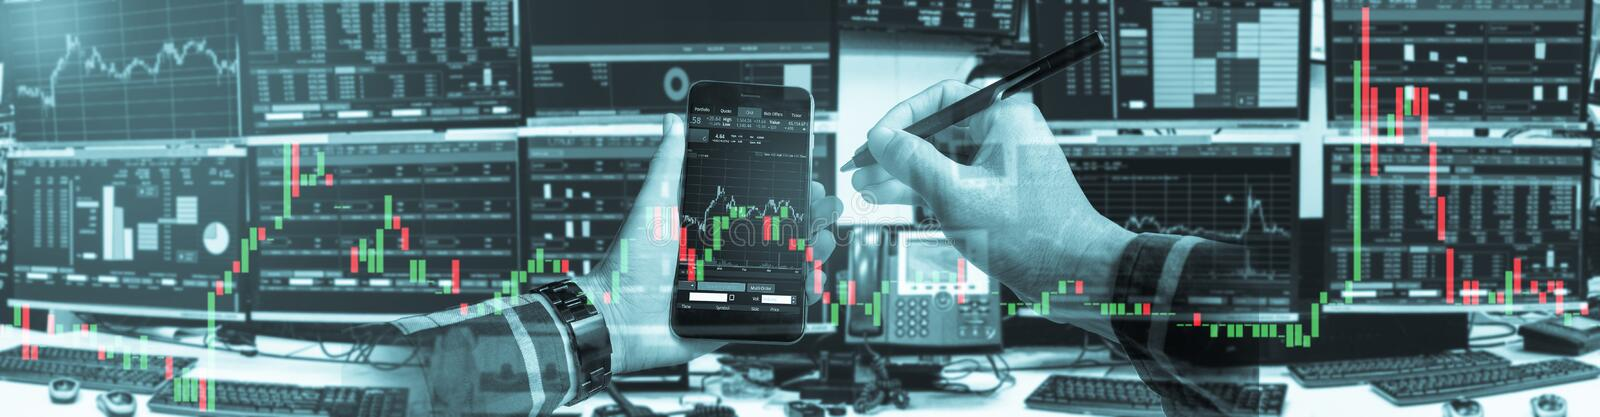 Double exposure of hand of business man using smartphone with stock trading room and stock trading chart background for investment. Business concept stock image